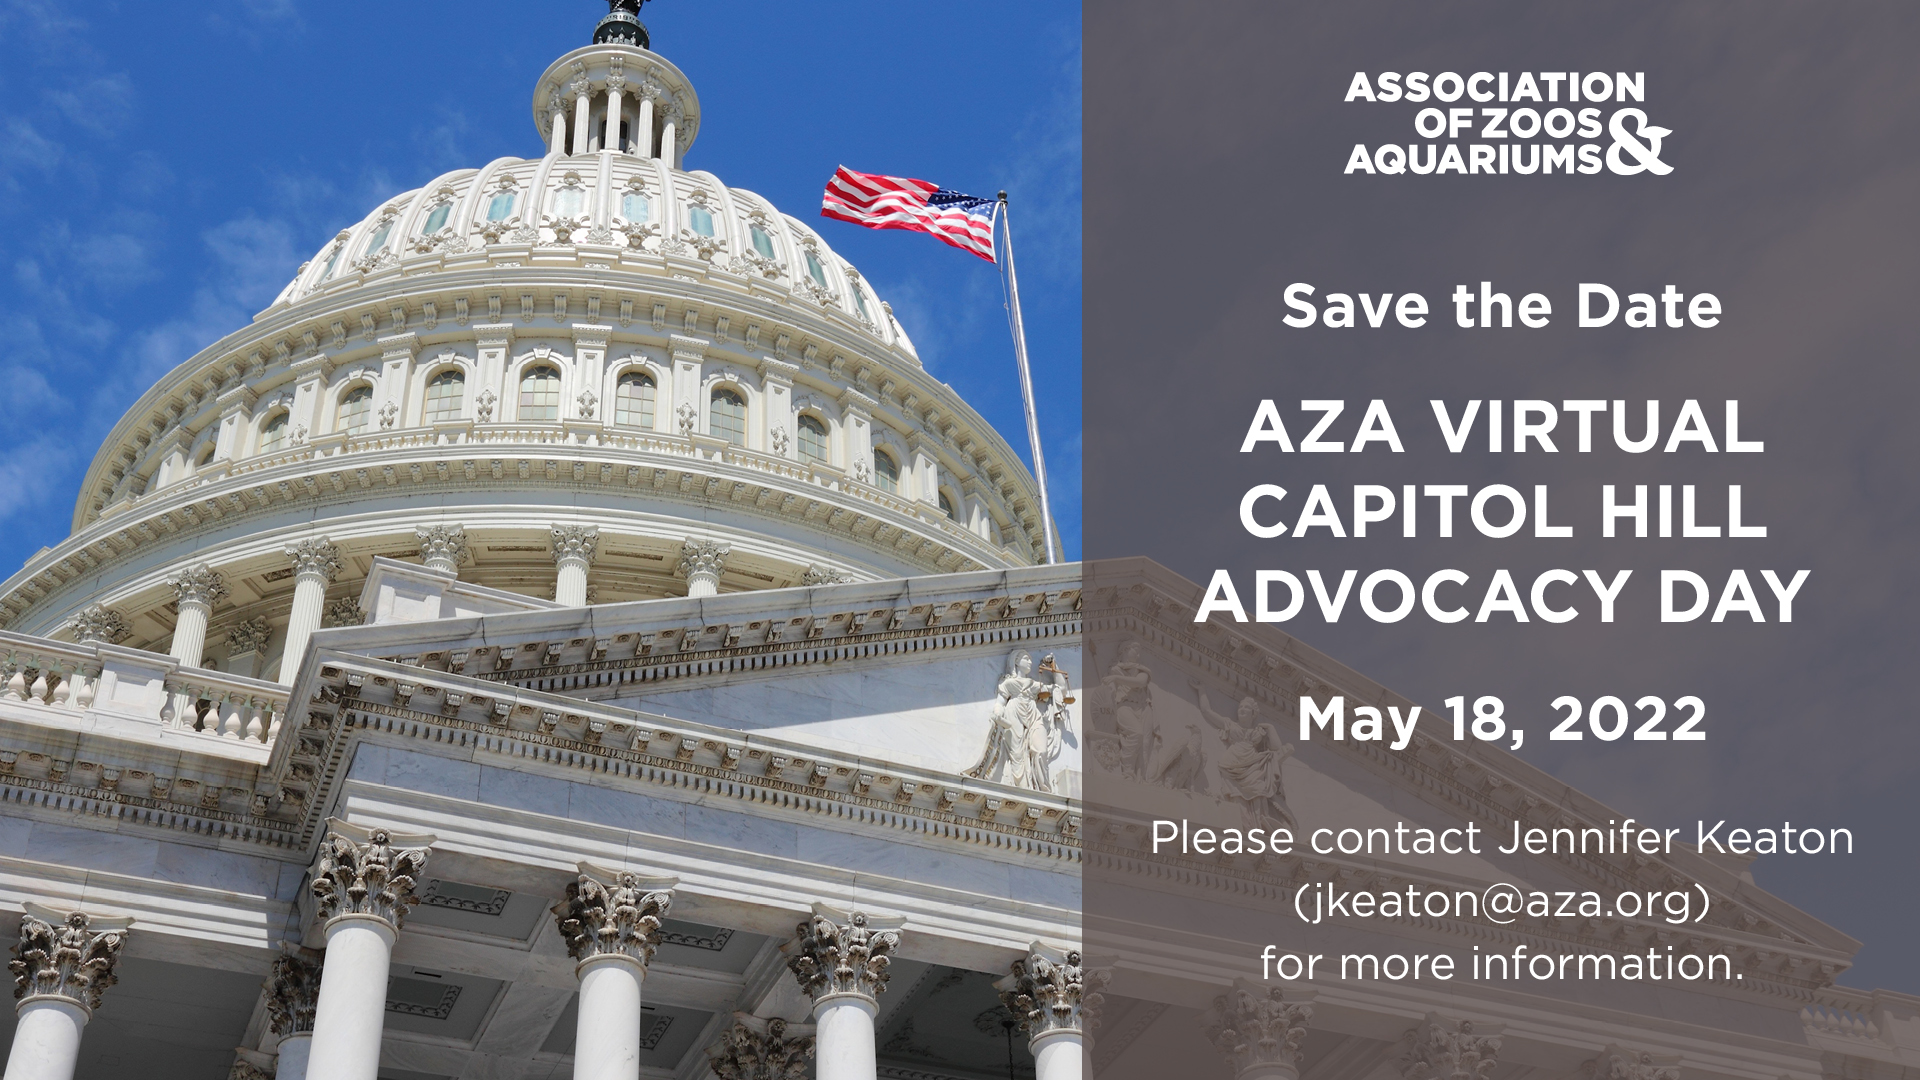 Save the Date: 4/14/2021 AZA Advocacy Day